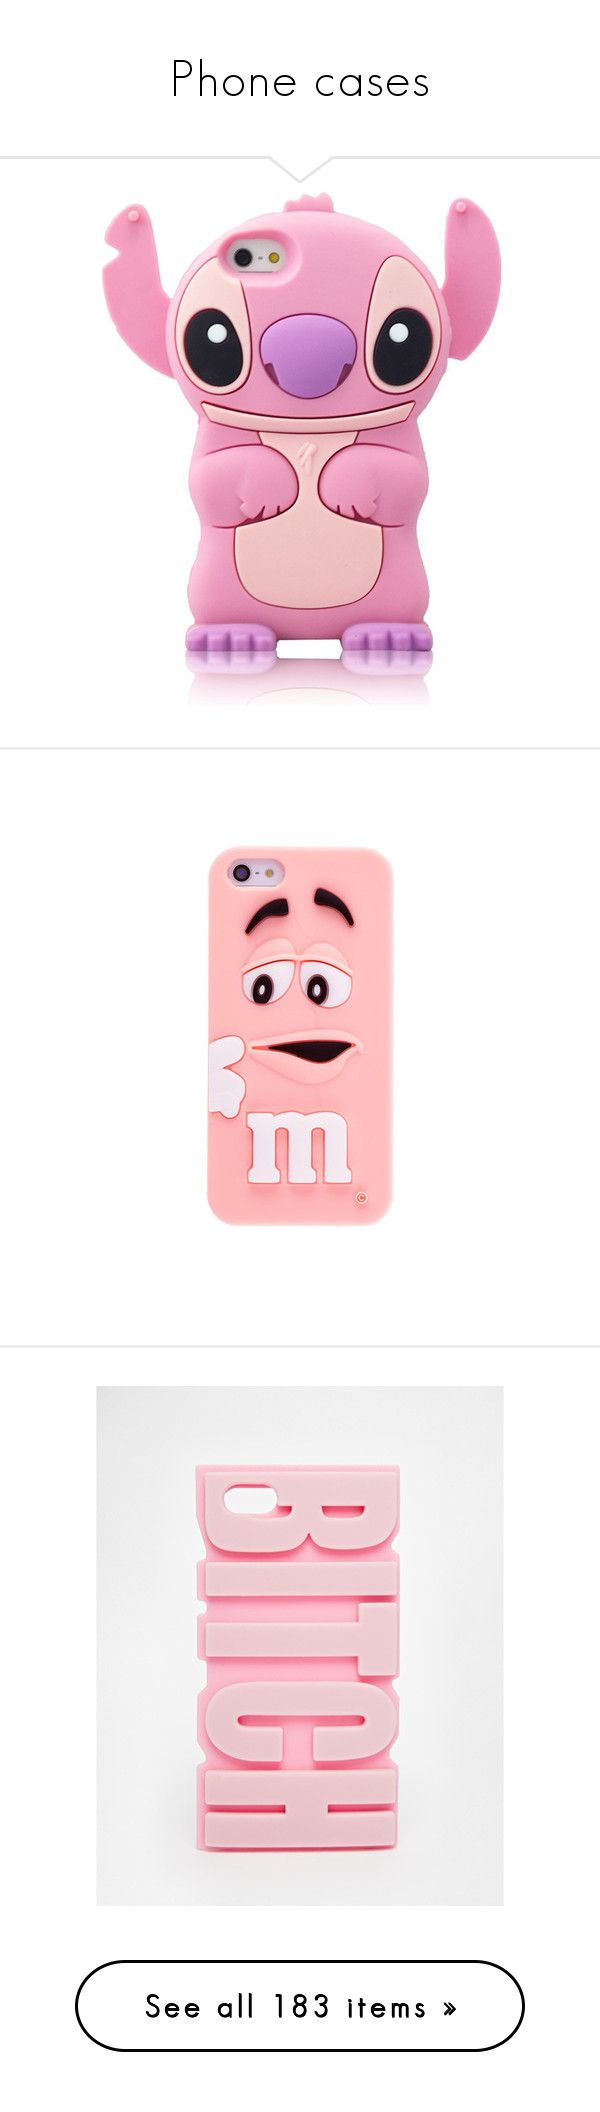 """""""Phone cases"""" by queenlove-996 ❤ liked on Polyvore featuring accessories, tech accessories, phone cases, comic book, pink stitch, silicone iphone case, iphone cover case, pink iphone case, iphone case and silicon iphone case"""